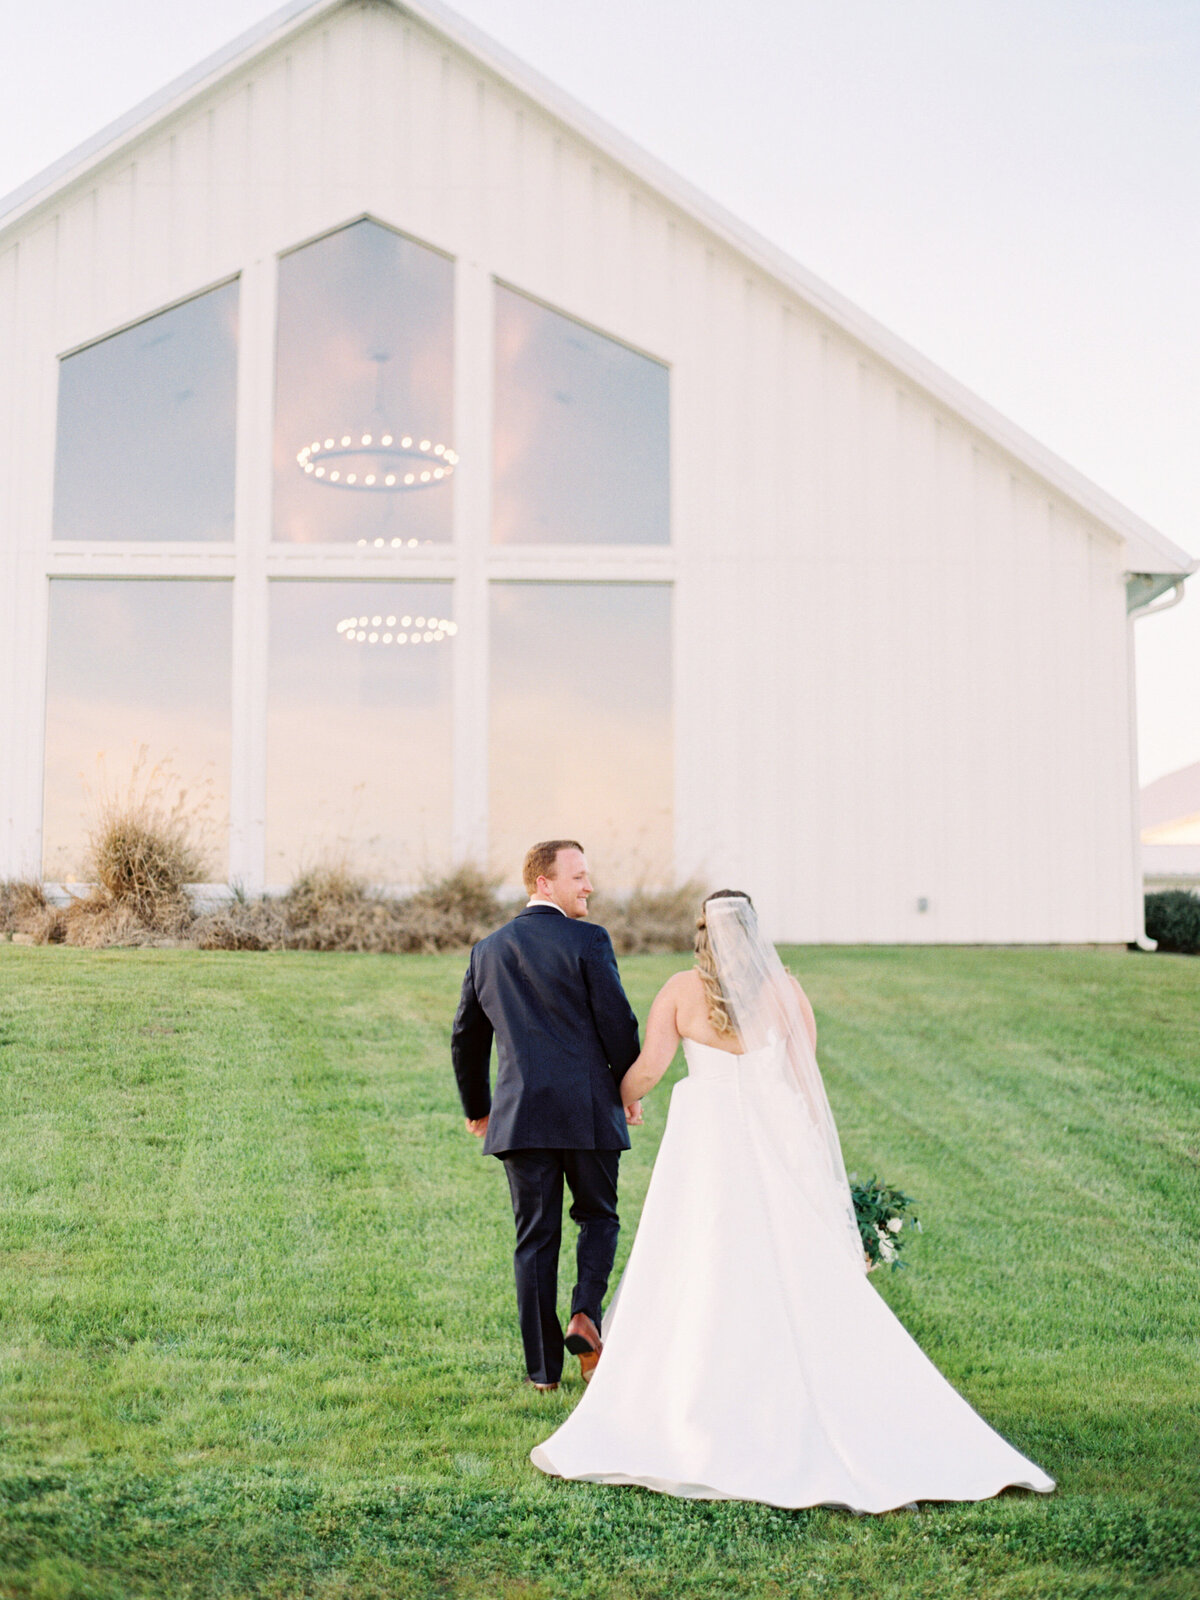 the-farmhouse-wedding-houston-texas-wedding-photographer-mackenzie-reiter-photography-9